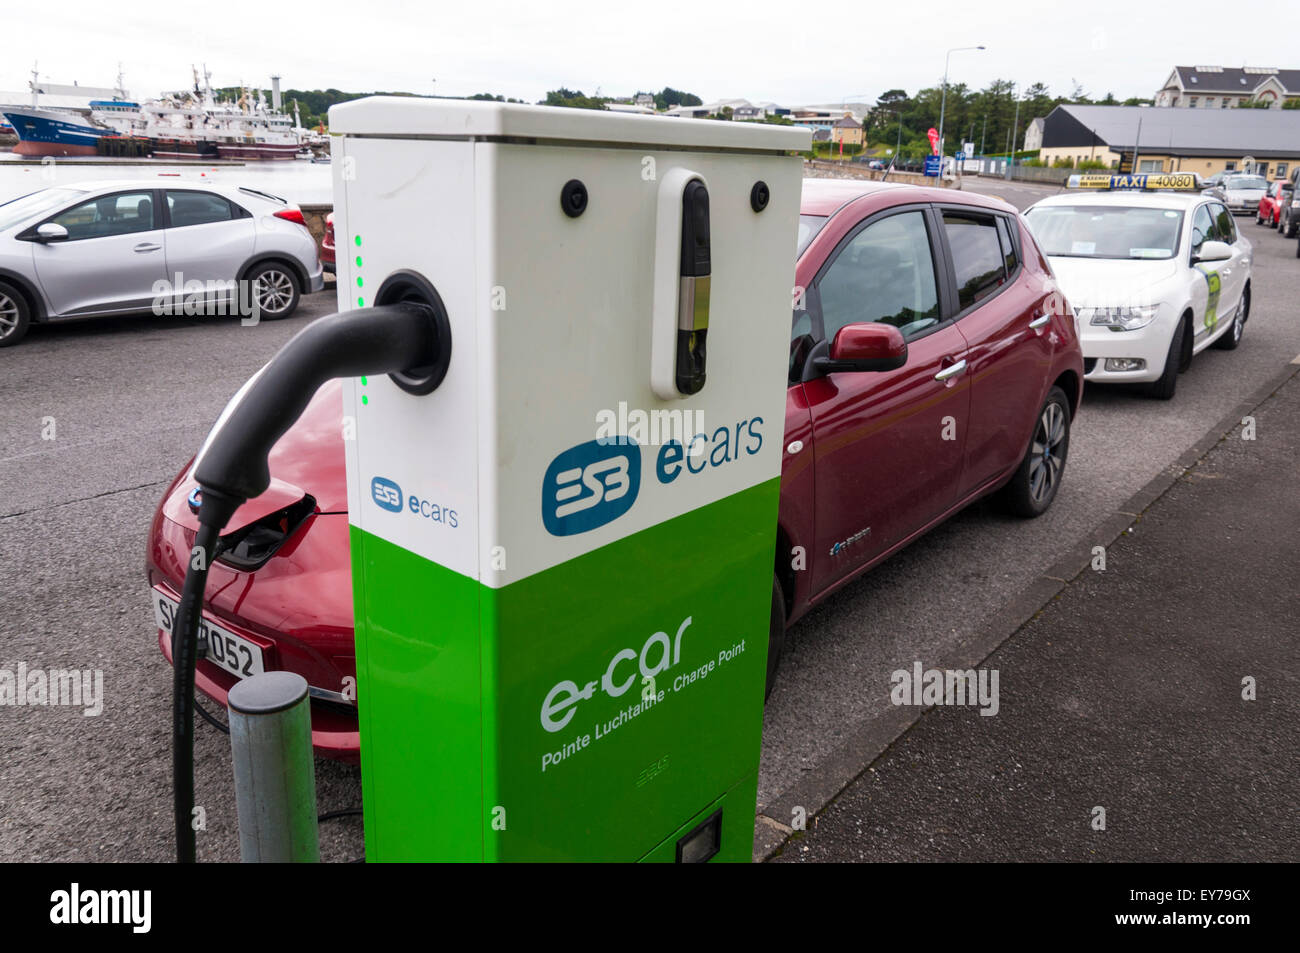 E ESB ecars voitures point de charge à Killybegs, comté de Donegal, Irlande Photo Stock